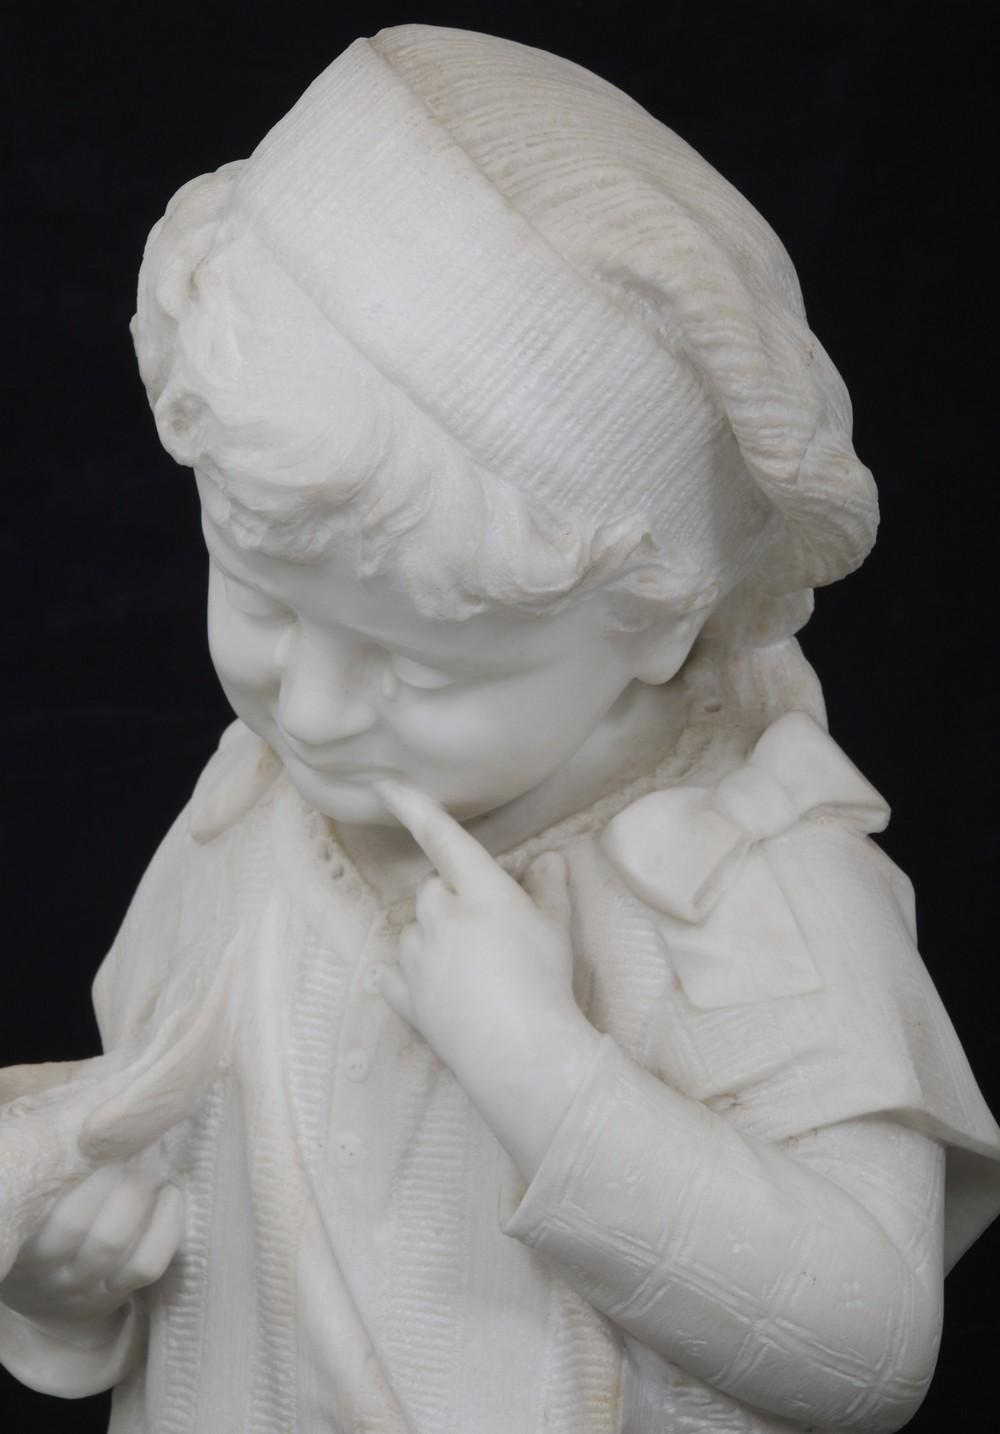 Italian Marble Sculpture of a Crying Child